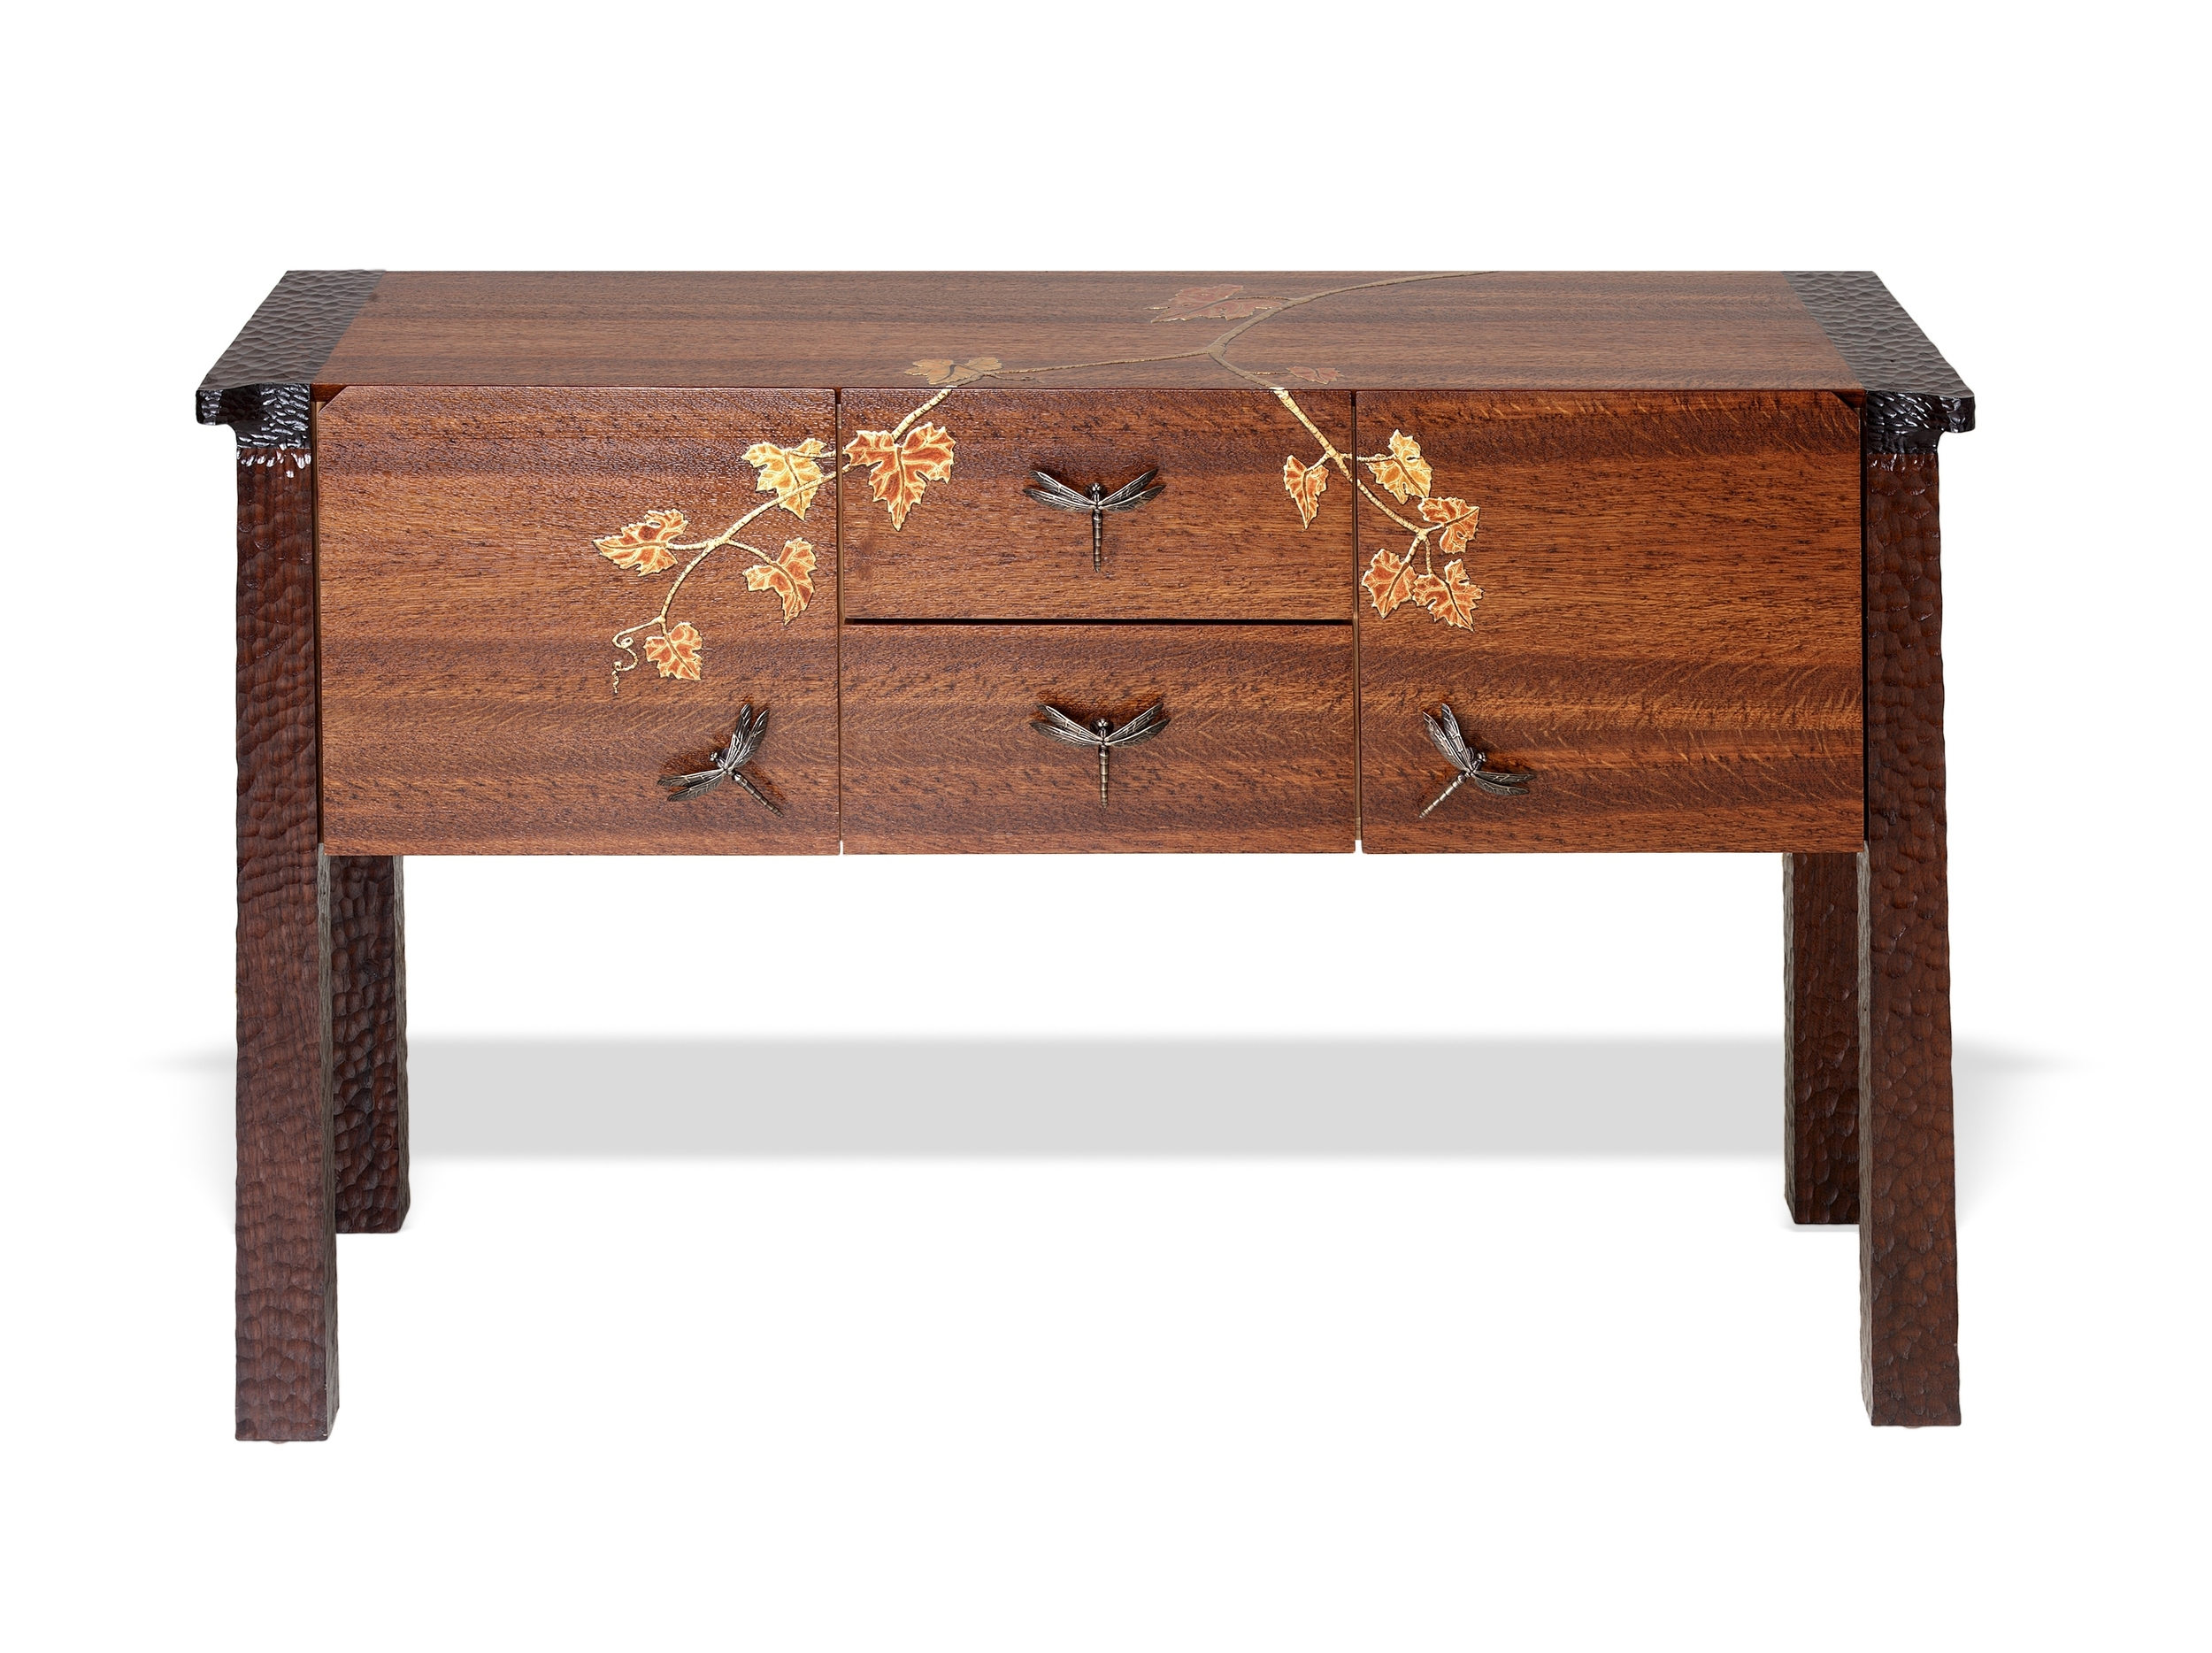 Ascot sideboard with vine japanning detail from Martin Pierce Custom Hardware